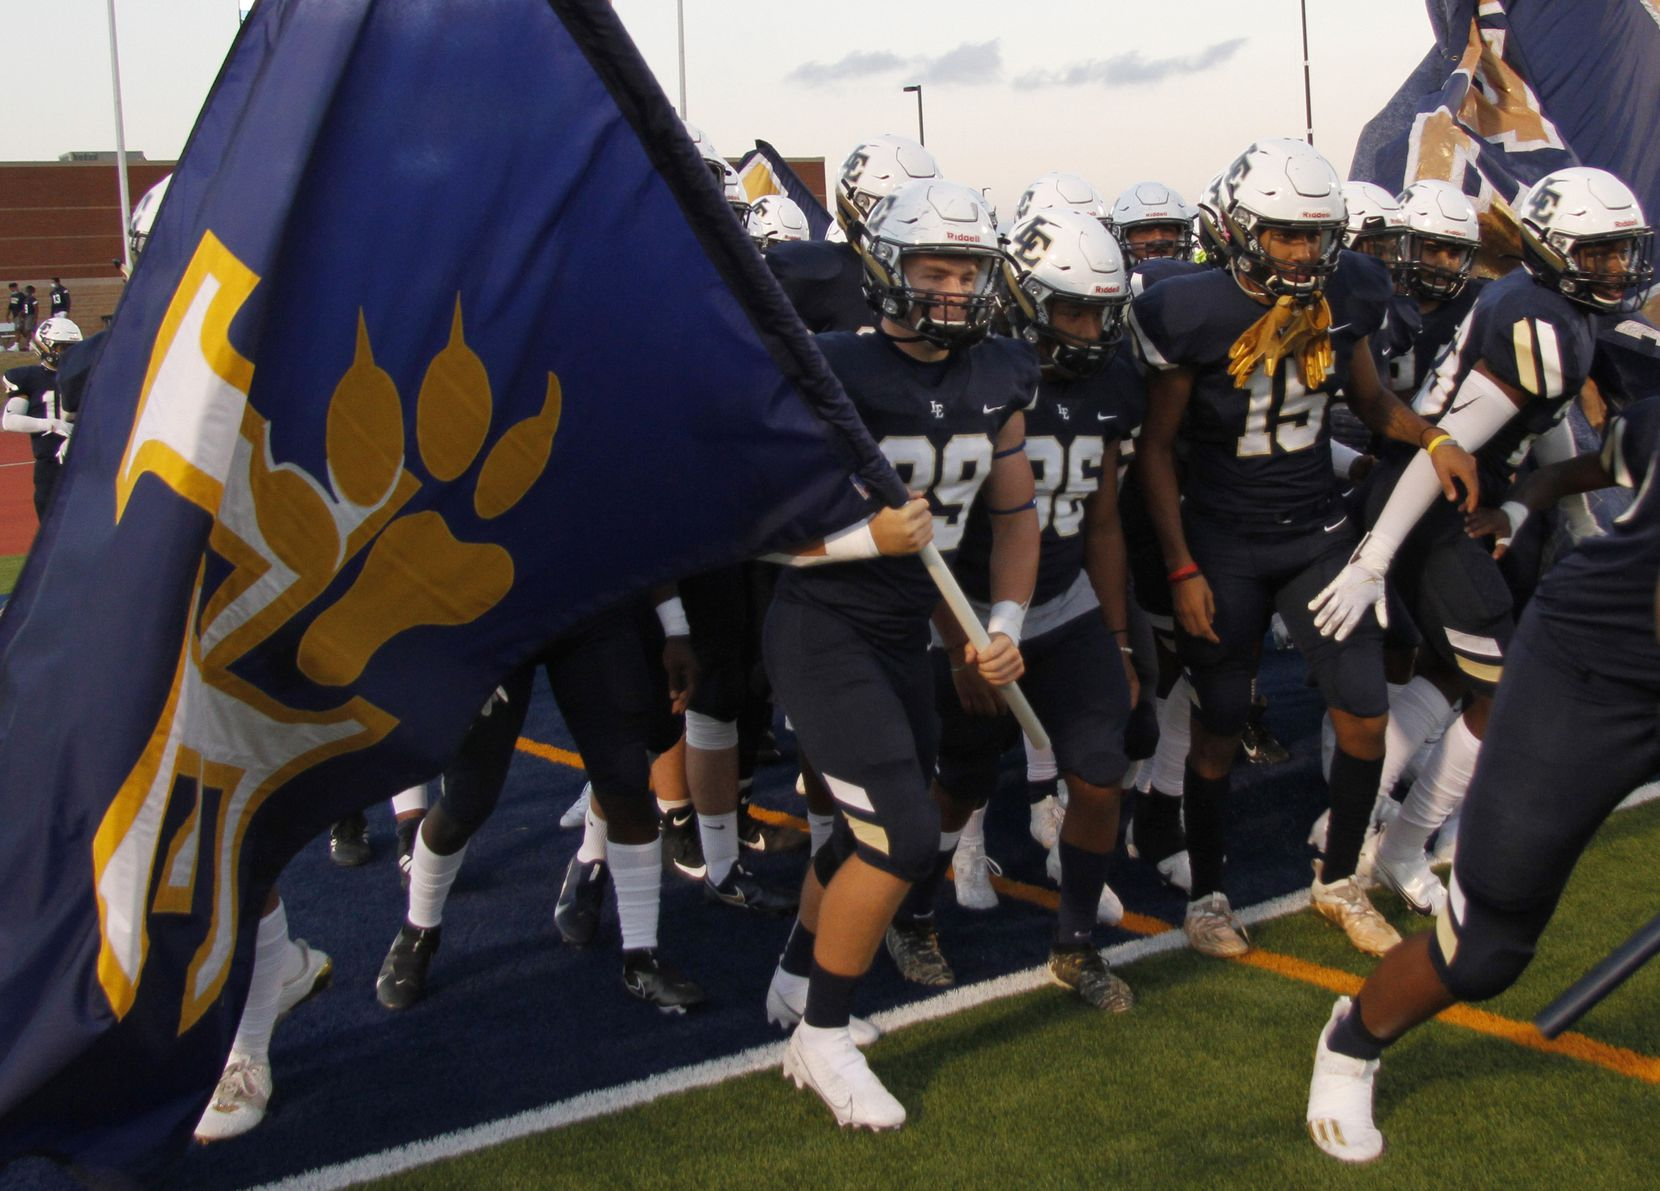 Members of the Little Elm Lobos prepare to run onto the field prior to the opening kickoff of their game against Plano West. The two teams played their non-district 6A football game at Lobo Stadium in Little Elm on October 9, 2020. (Steve Hamm/ Special Contributor)